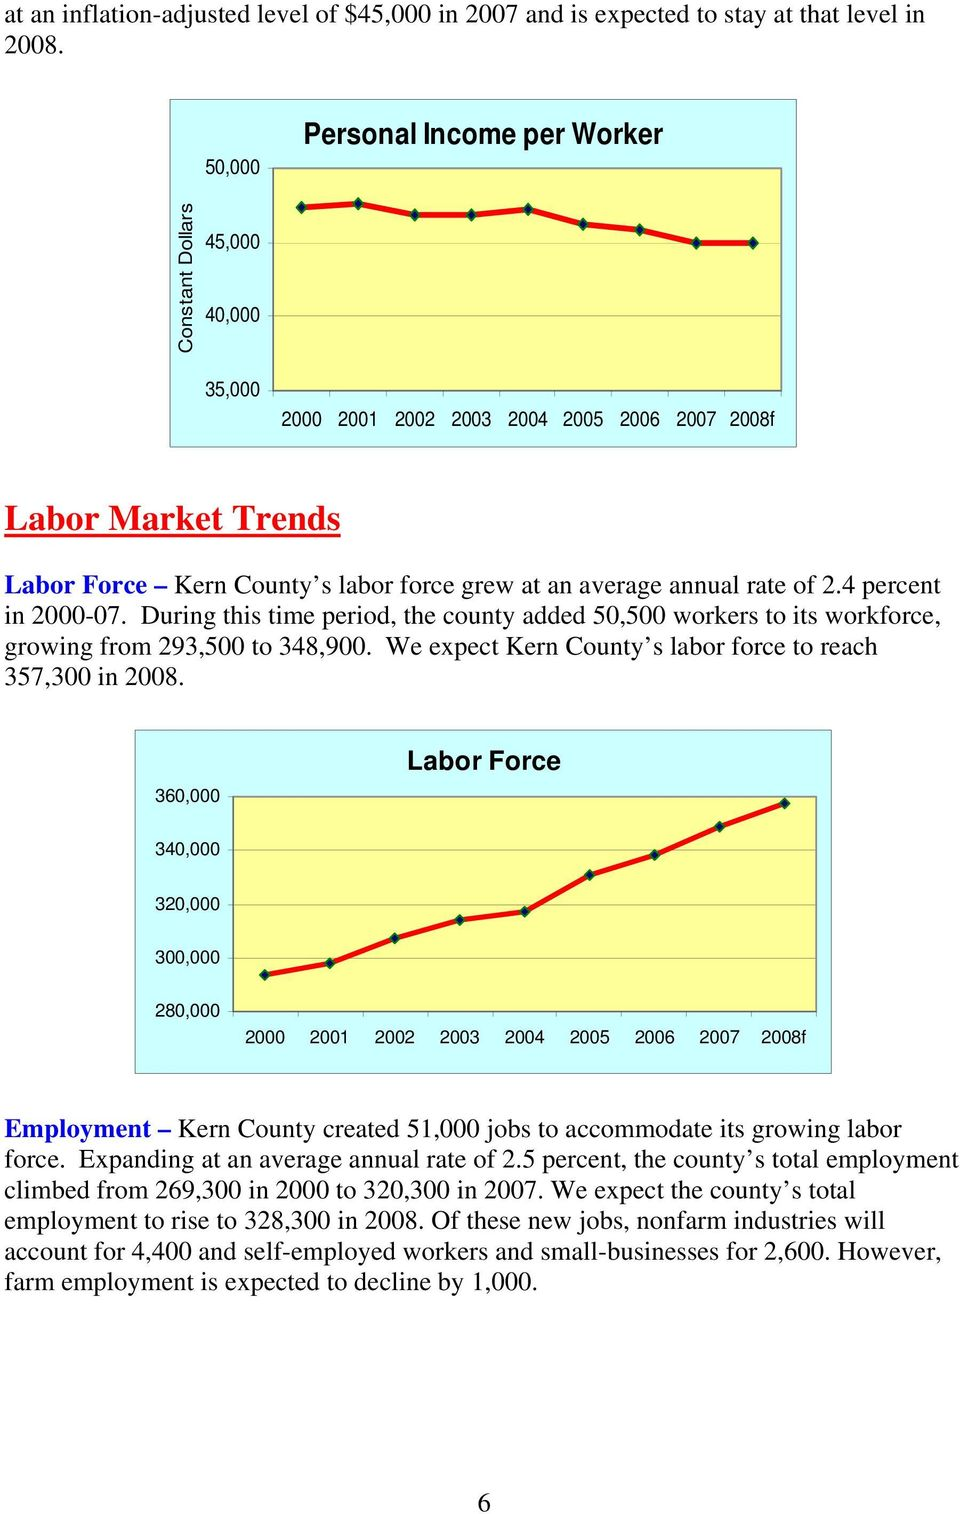 During this time period, the county added 50,500 workers to its workforce, growing from 293,500 to 348,900. We expect Kern County s labor force to reach 357,300 in 2008.